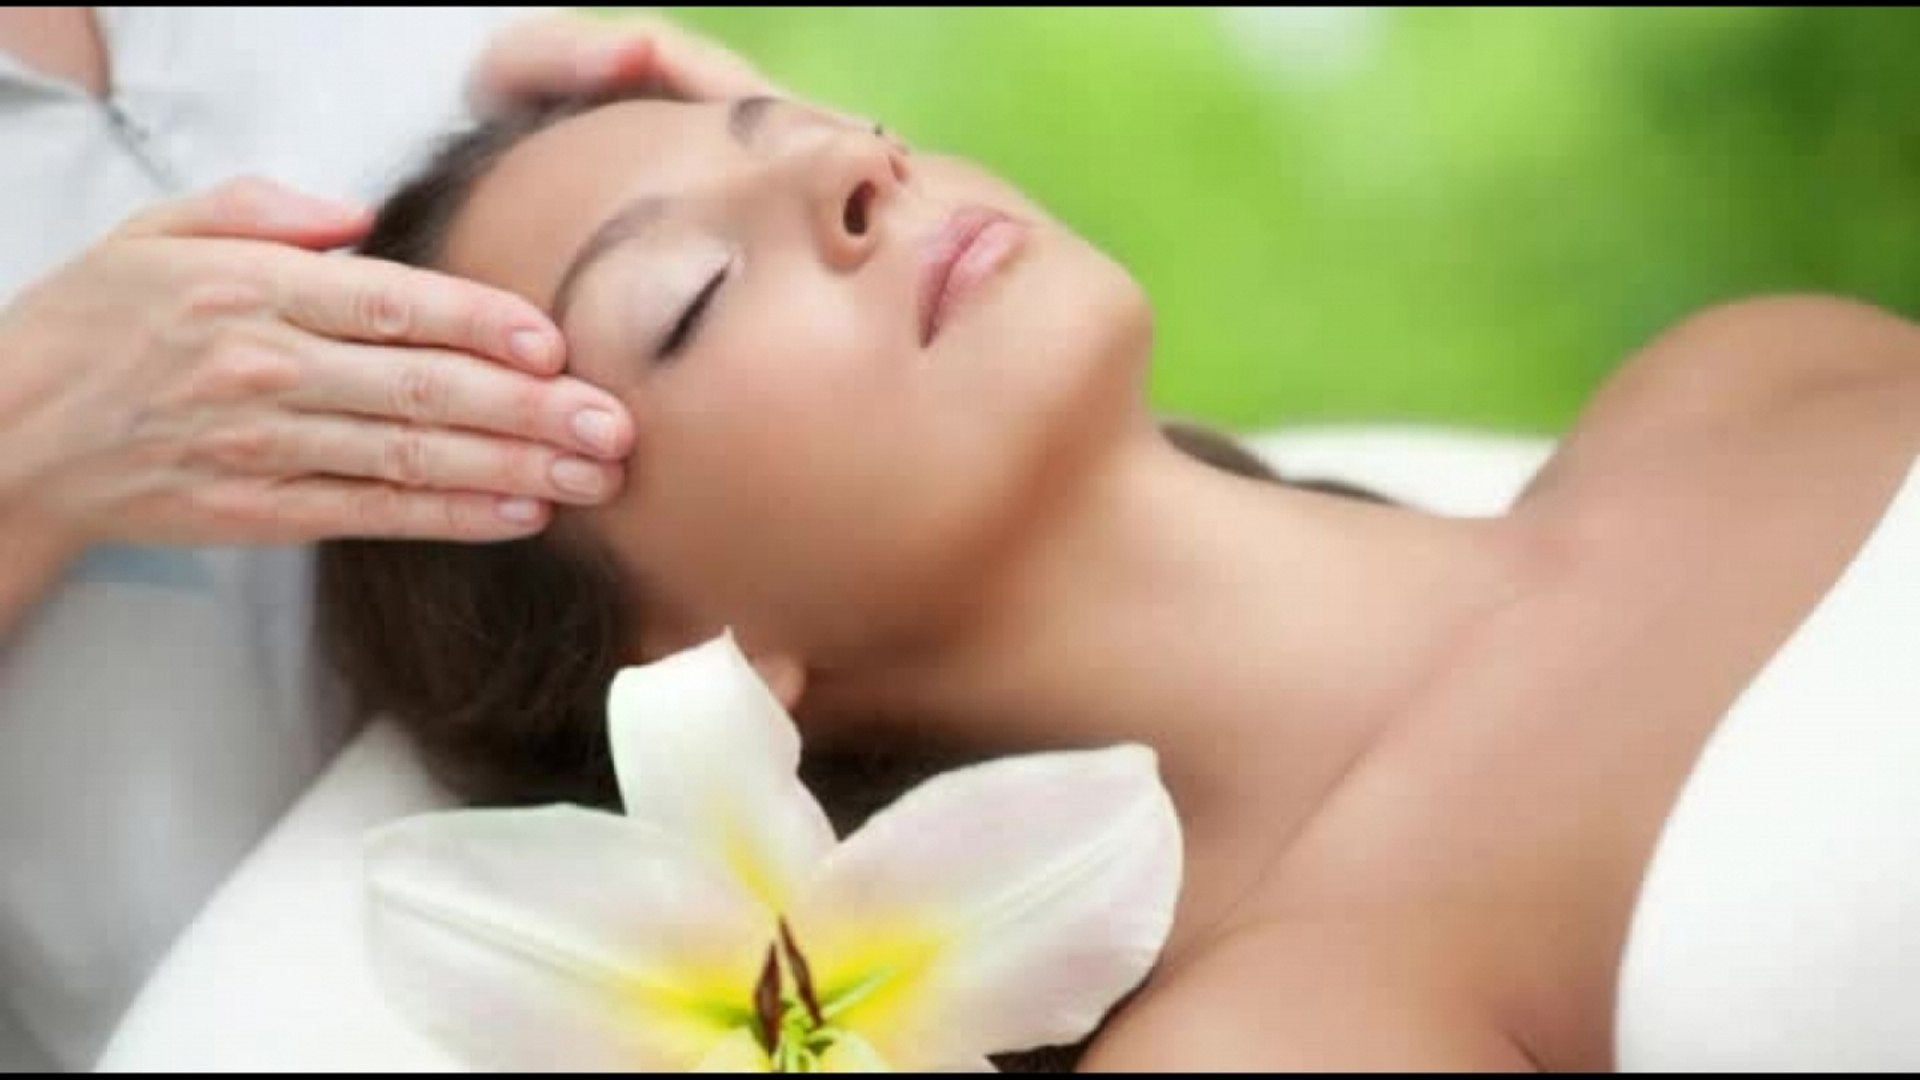 3 Hour Super Relaxing Spa Music: - Massage Music, Relaxation Music, Soothing, Meditation Music,Yoga